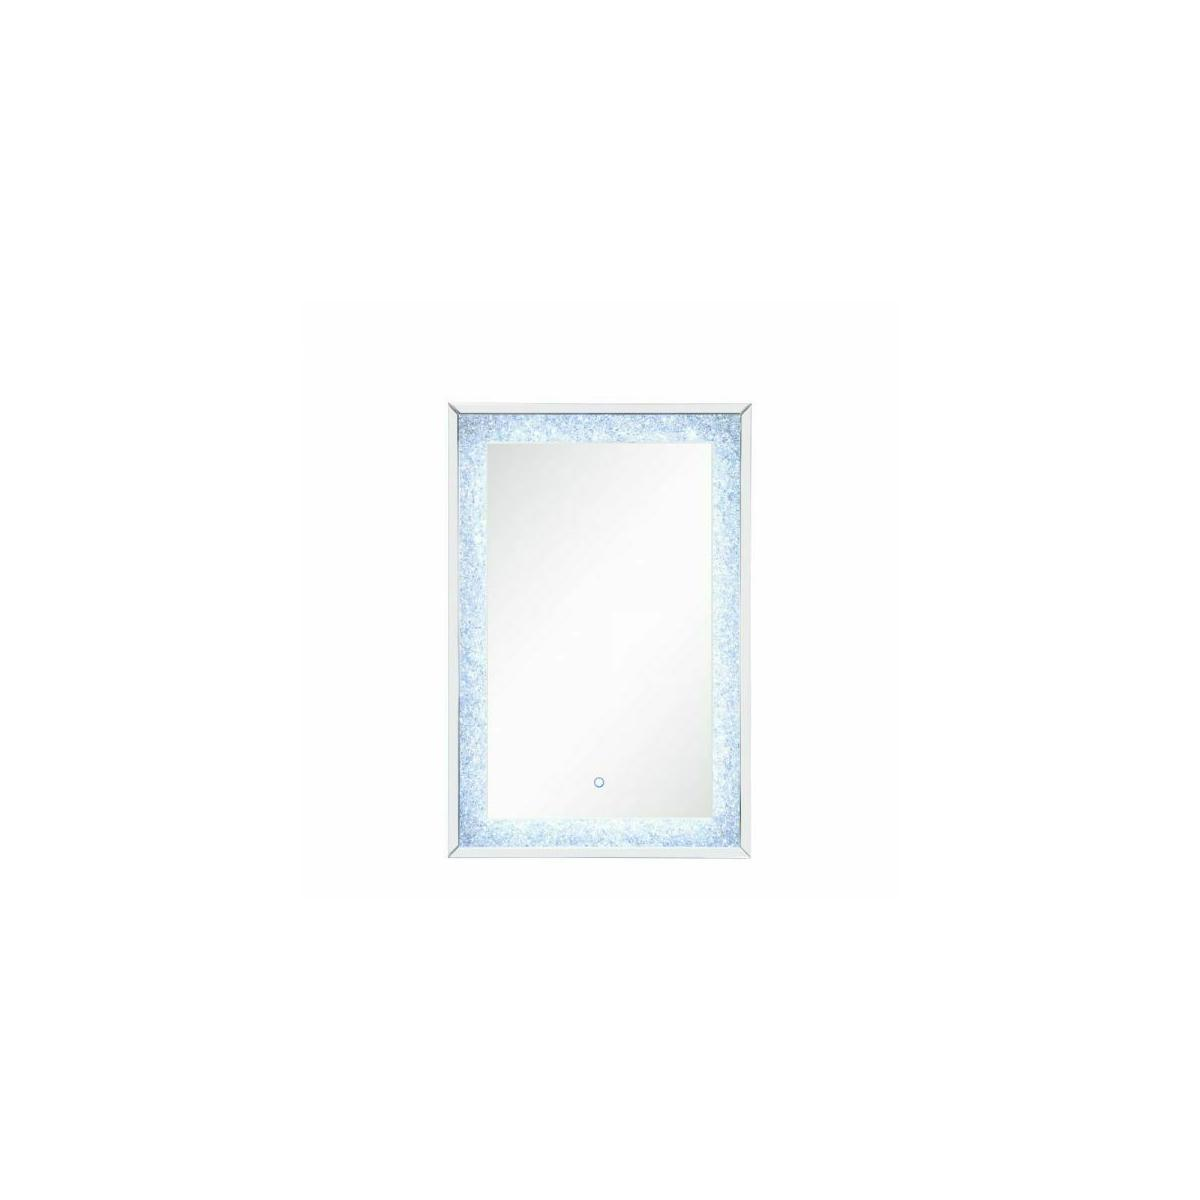 ACME Noralie Wall Decor (LED) - 97706 - Glam - LED Light, Mirror, Glass, MDF, Faux Diamonds (Acrylic) - Mirrored and Faux Diamonds